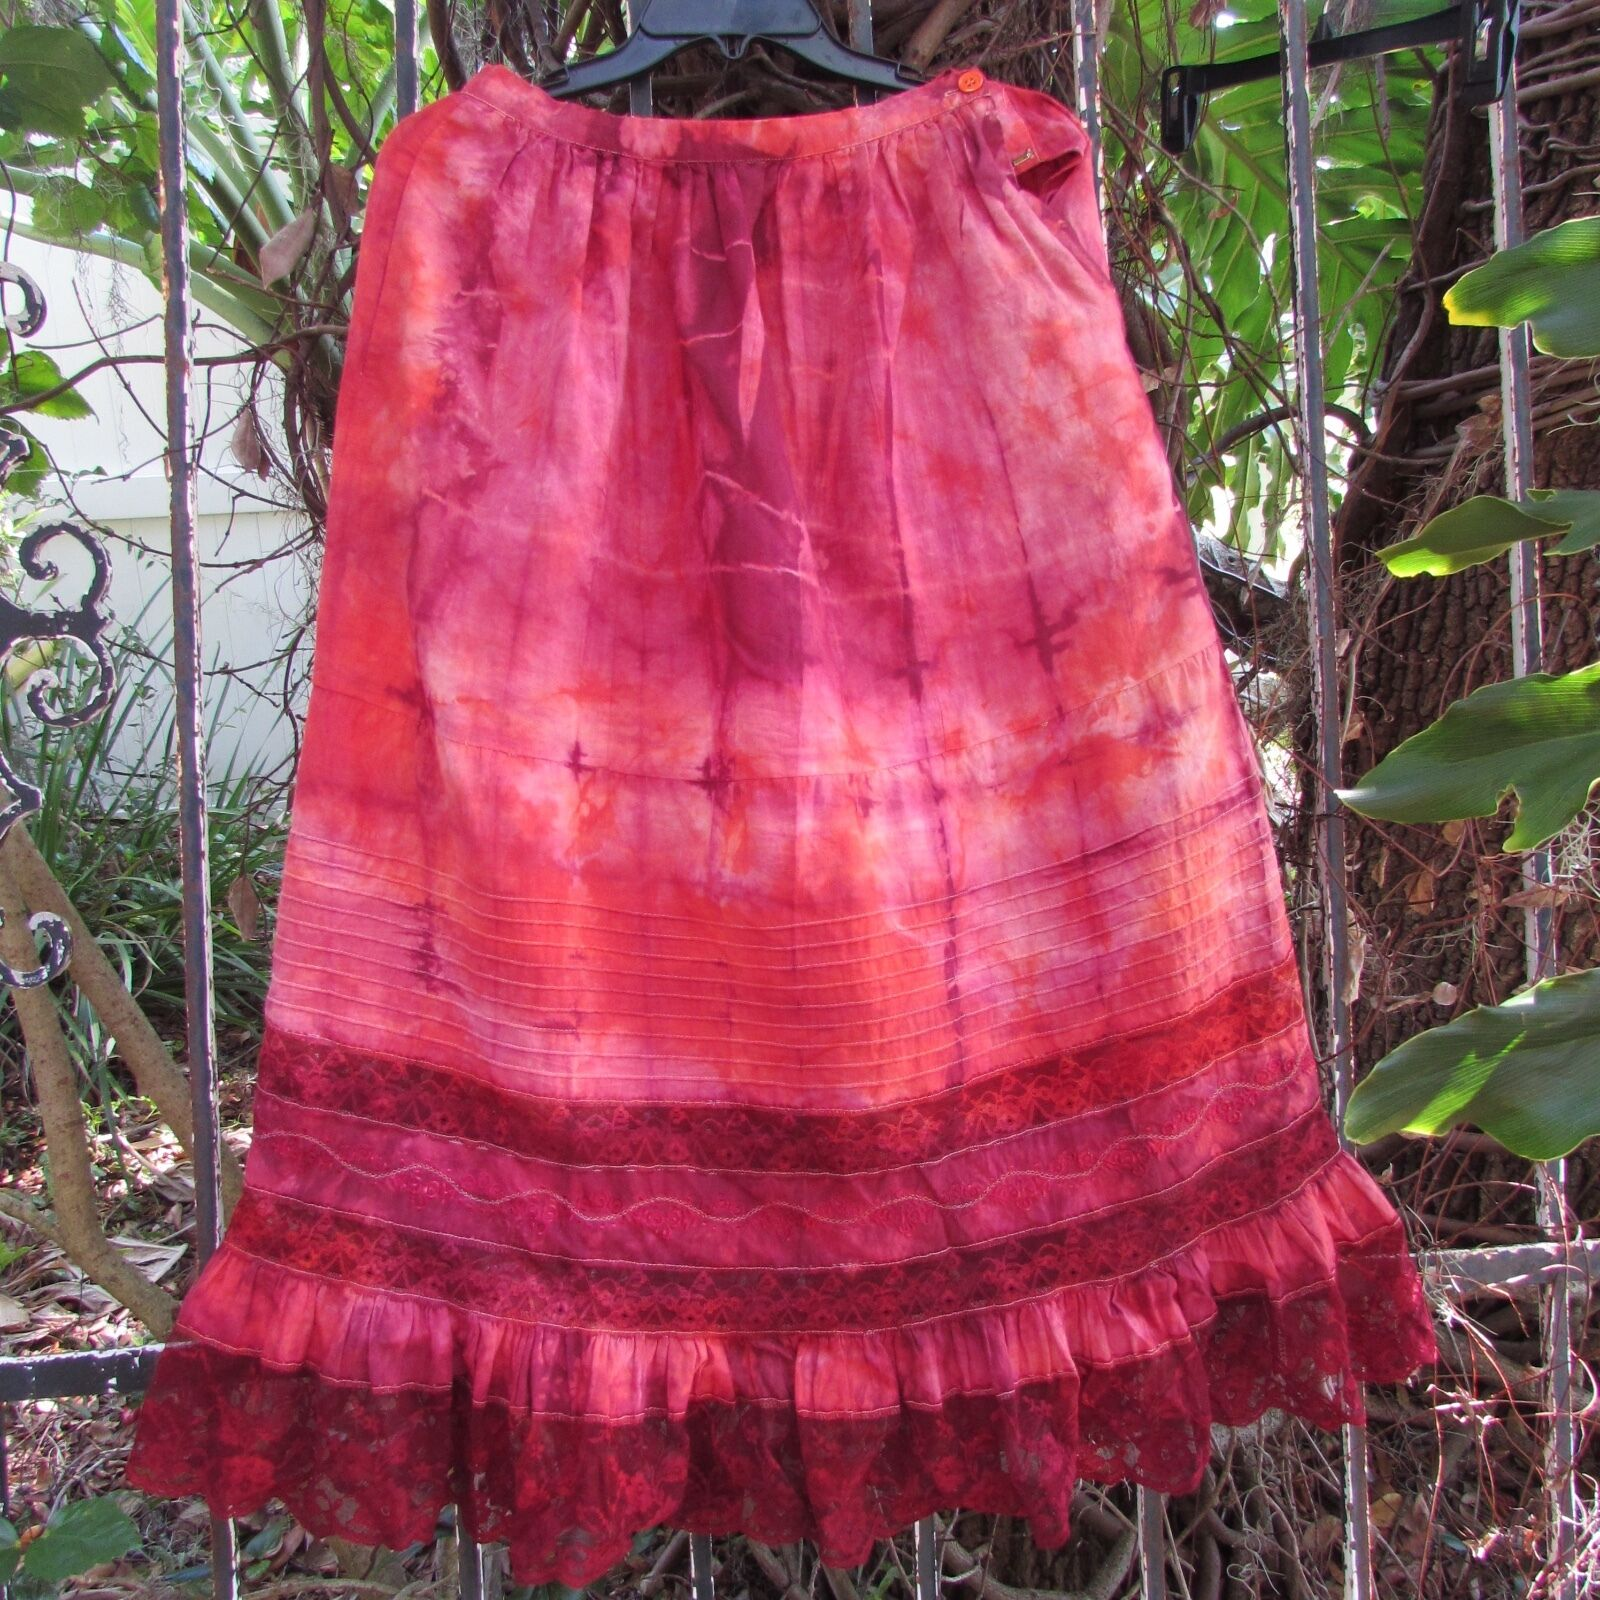 Vintage Women's Skirt Hand Dyed Gypsy Hippie Festival Romance Boho Cotton XS S